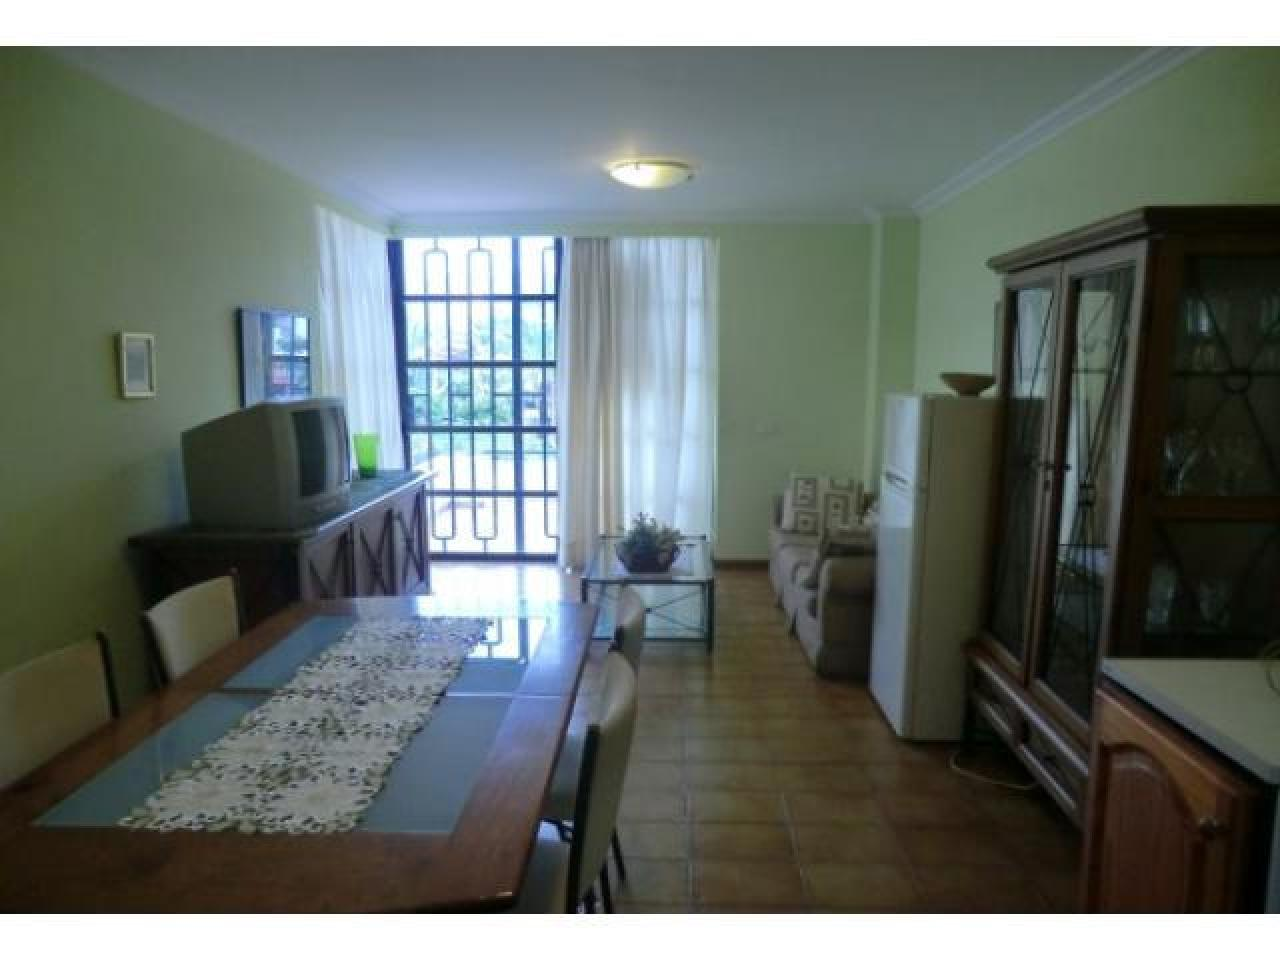 Real estate in Tenerife for sale » #157 - 1